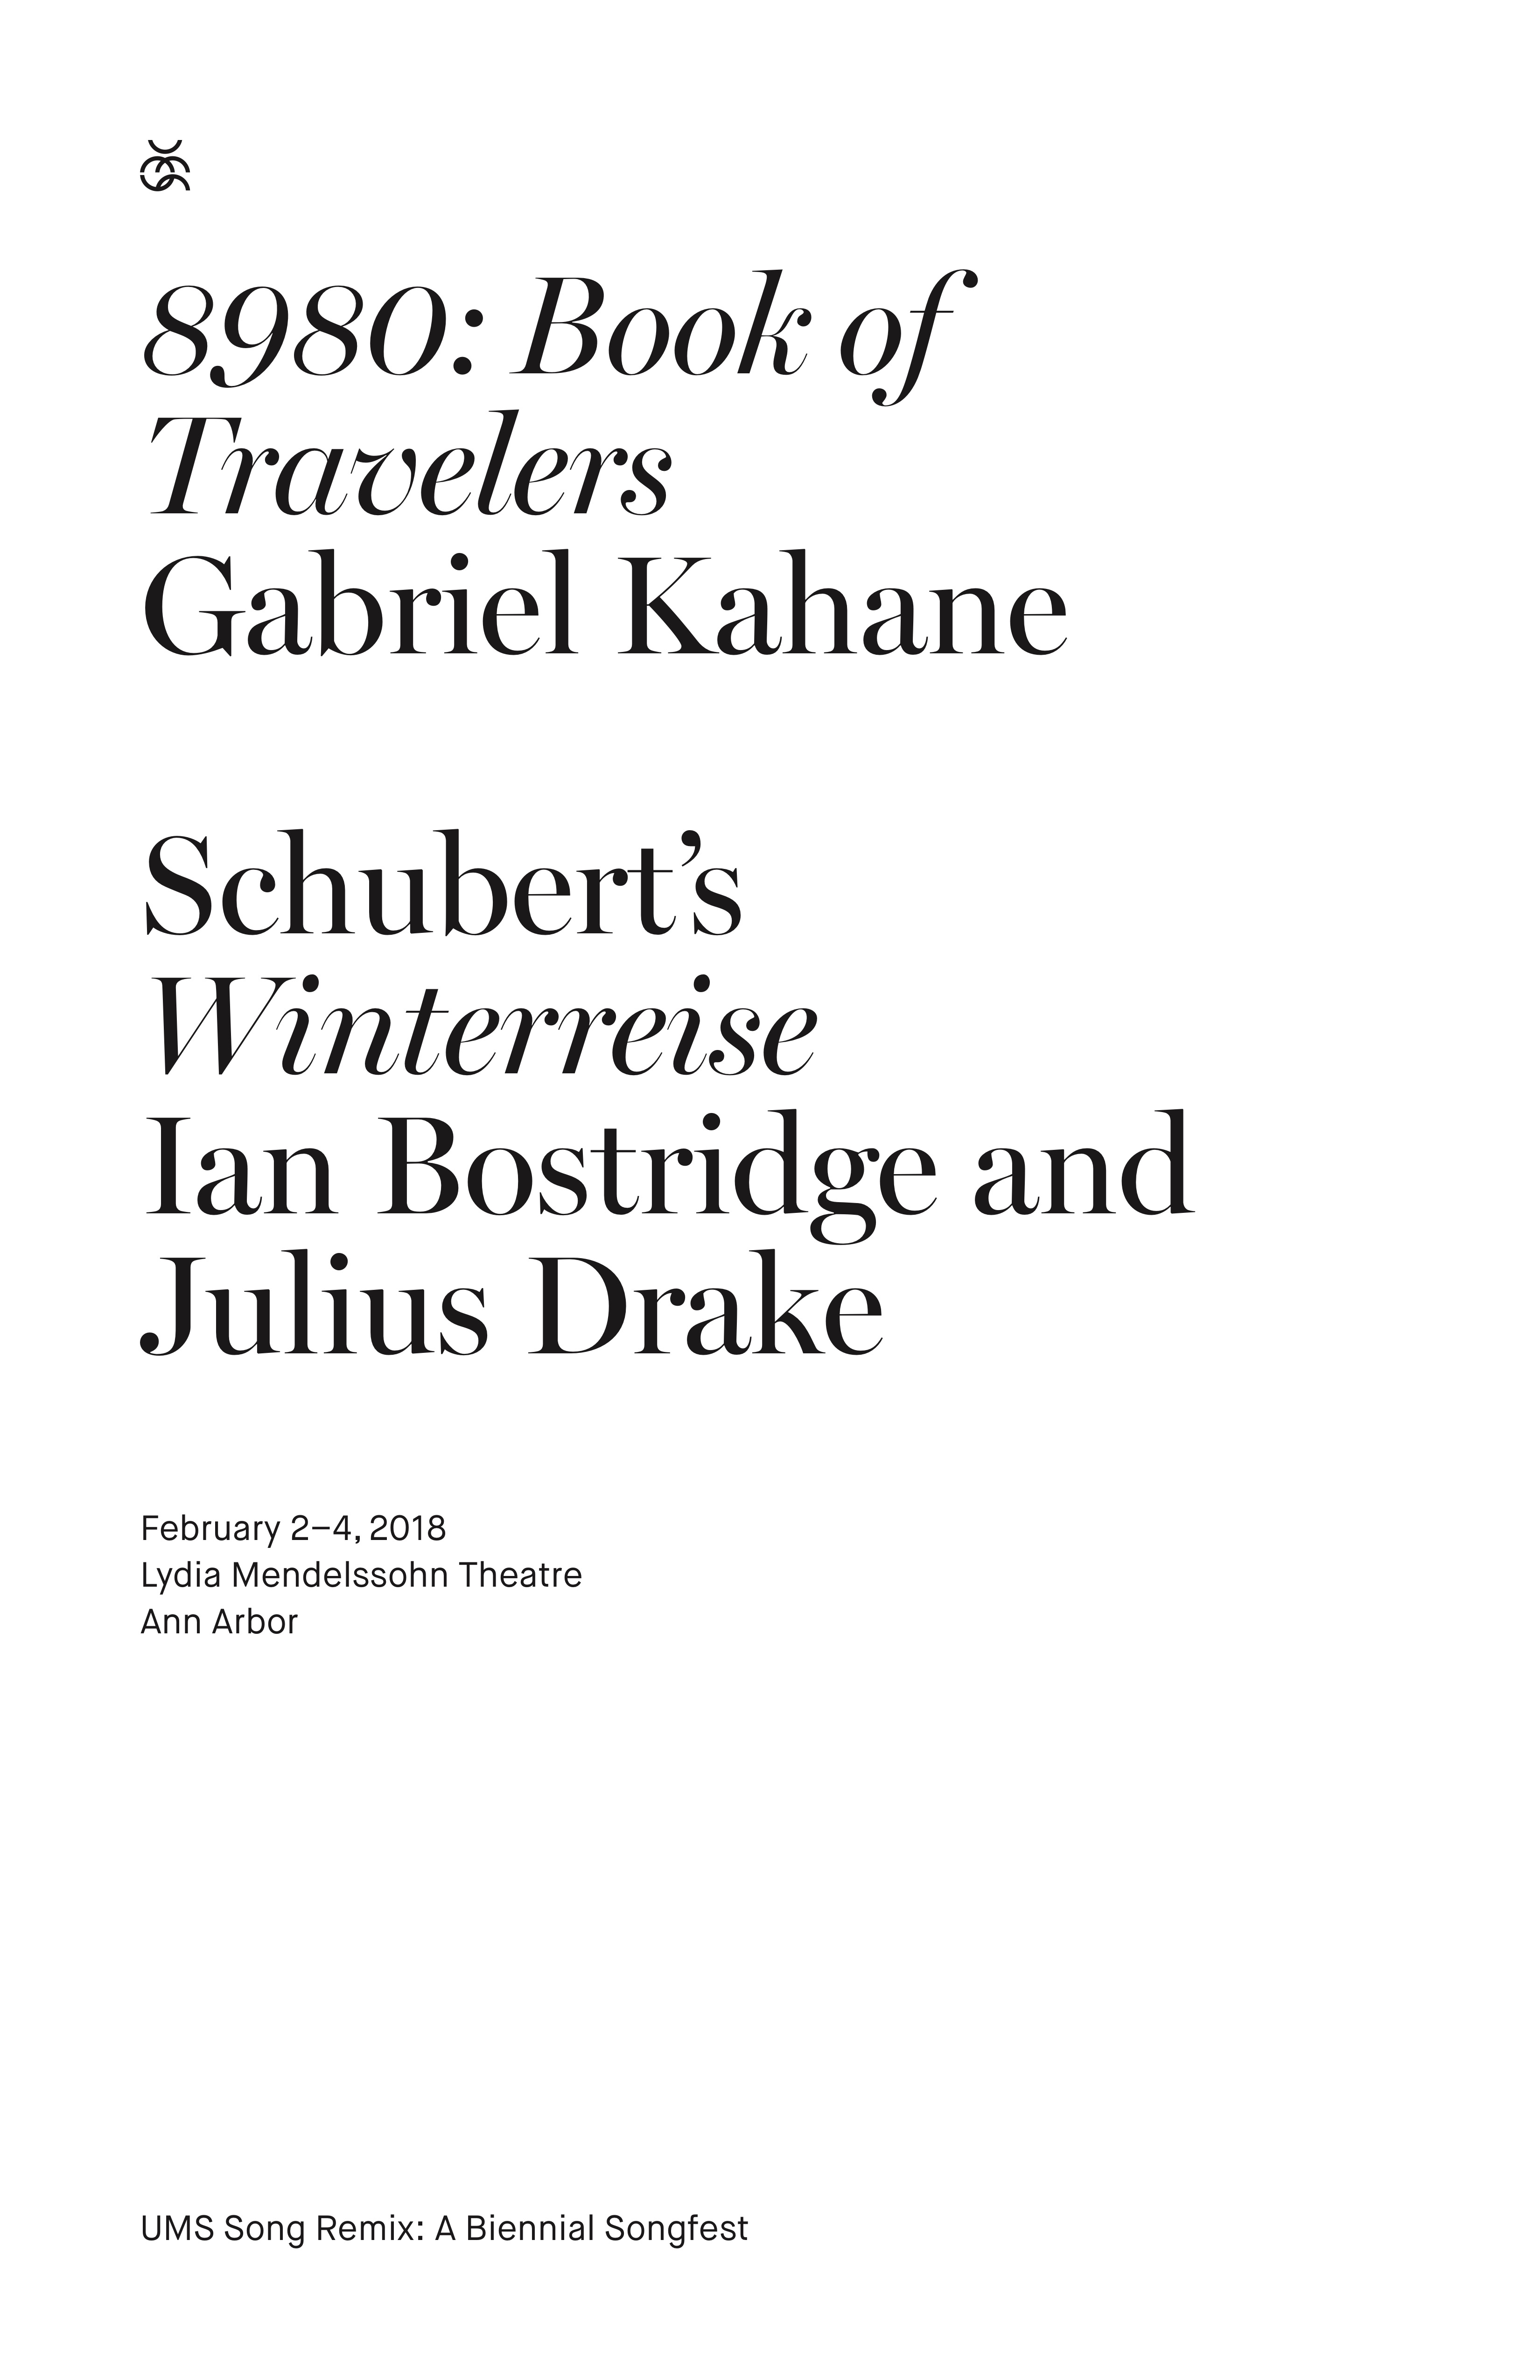 UMS Concert Program, February 2, 2018 - February 4, 2018 - 8980: Book of Travelers - Gabriel Kahane / Schubert's Winterreise - Ian Bostridge and Julius Drake image